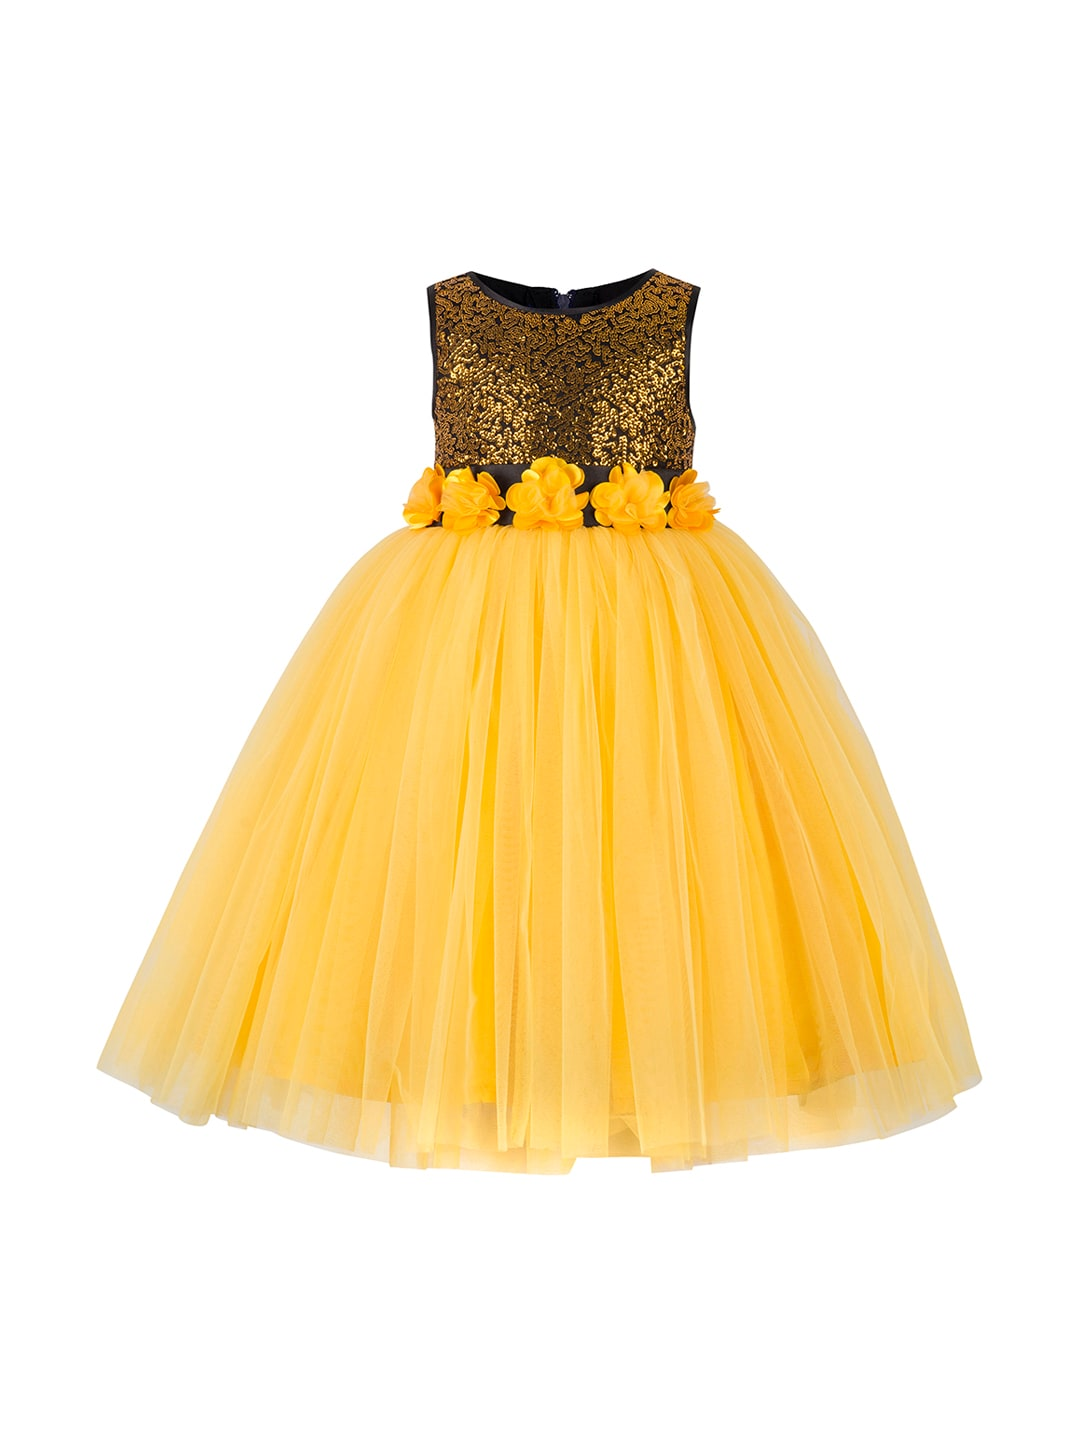 Kids Dresses - Buy Kids Clothing Online in India  f8935a130